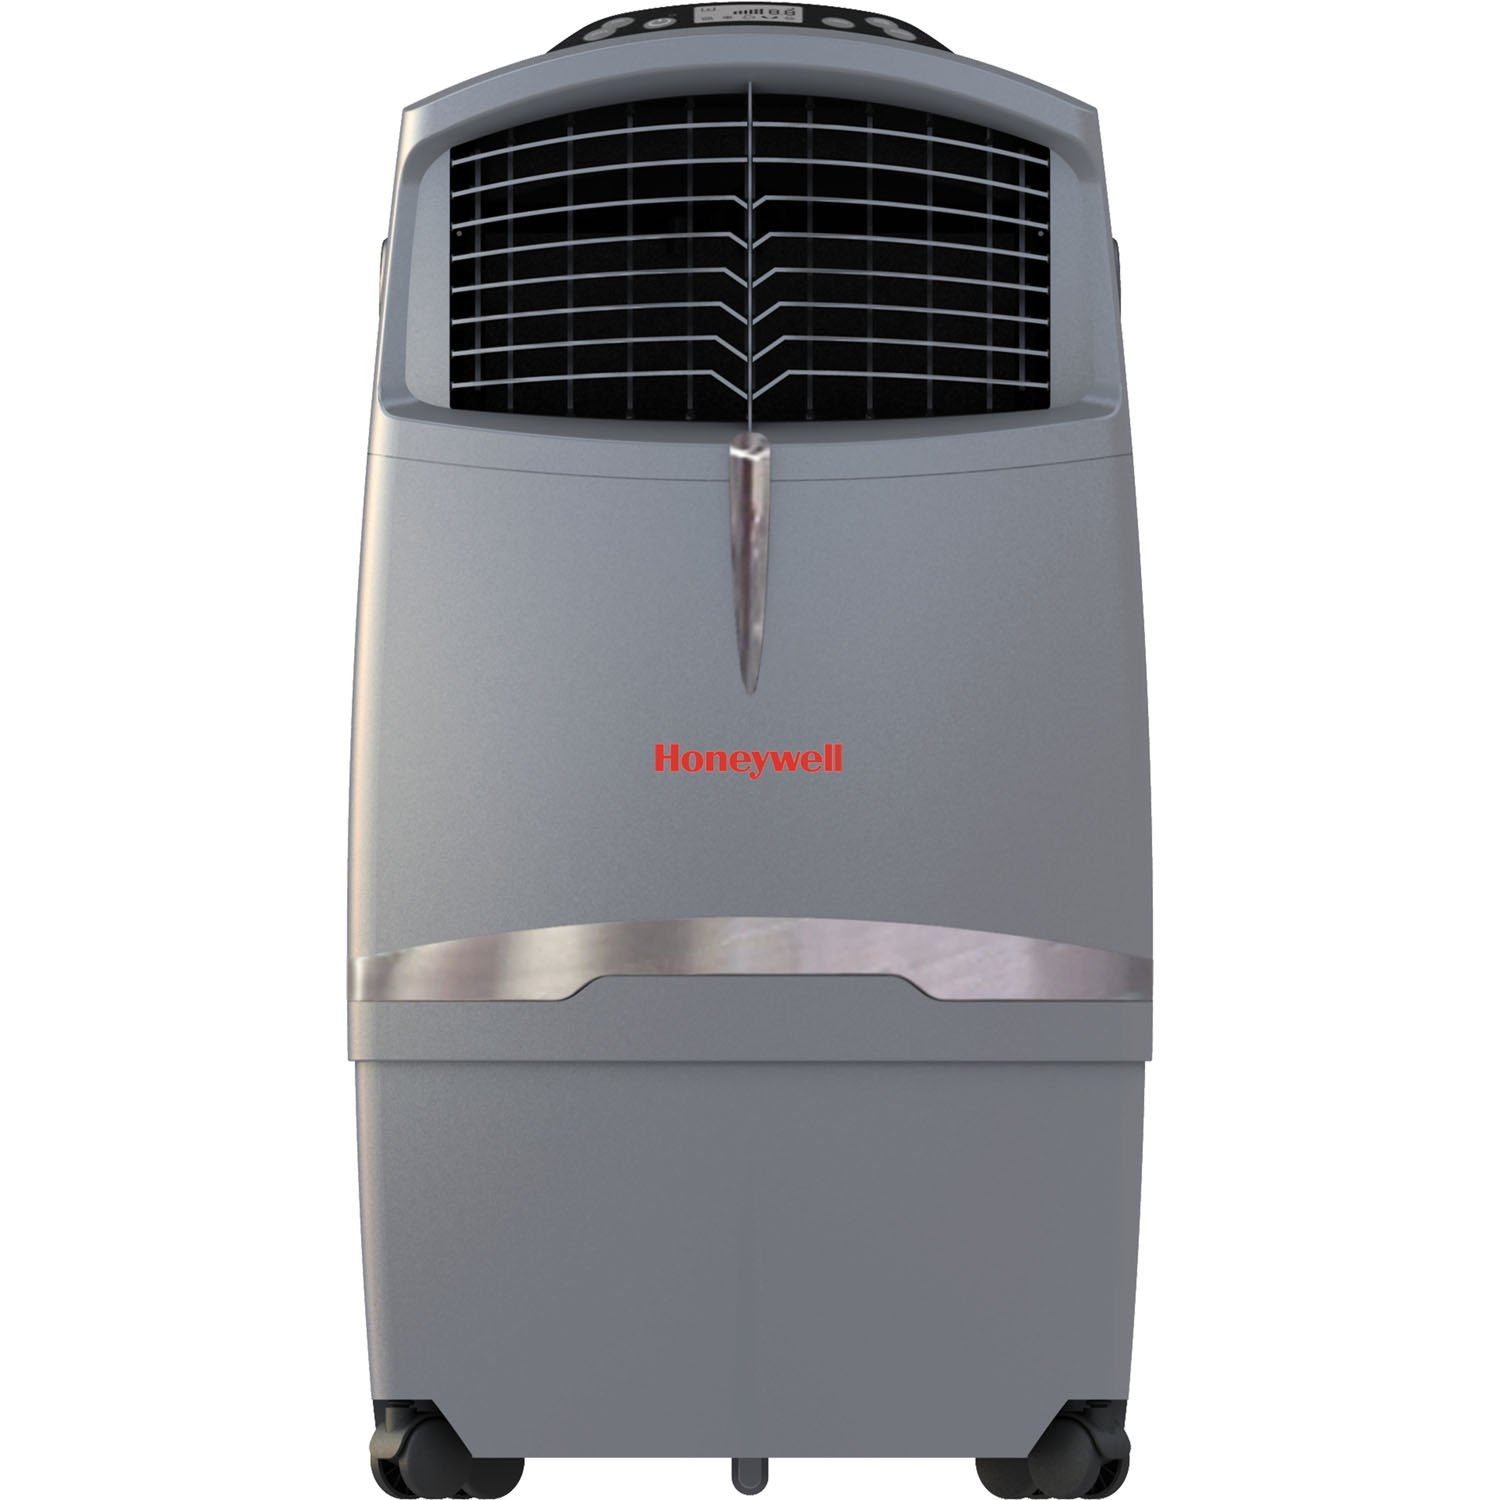 #A22E29 Best Evaporative Cooler: Evaporative Air Cooler Reviews  Most Effective 2735 Evaporative Coolers Portable pictures with 1500x1500 px on helpvideos.info - Air Conditioners, Air Coolers and more